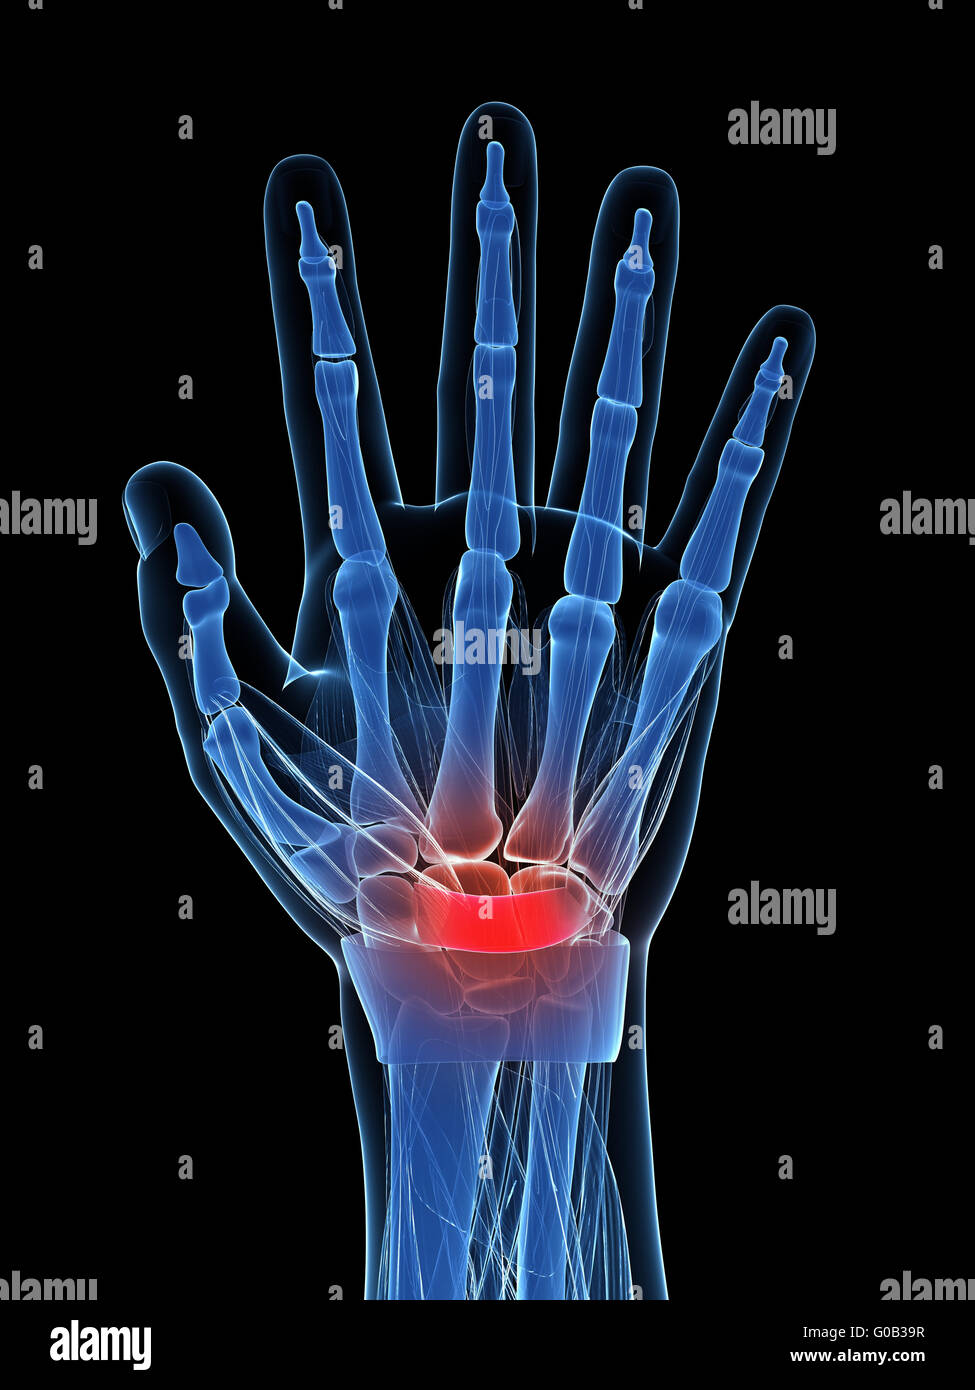 3d rendered illustration of the carpal tunnel syndrome - Stock Image